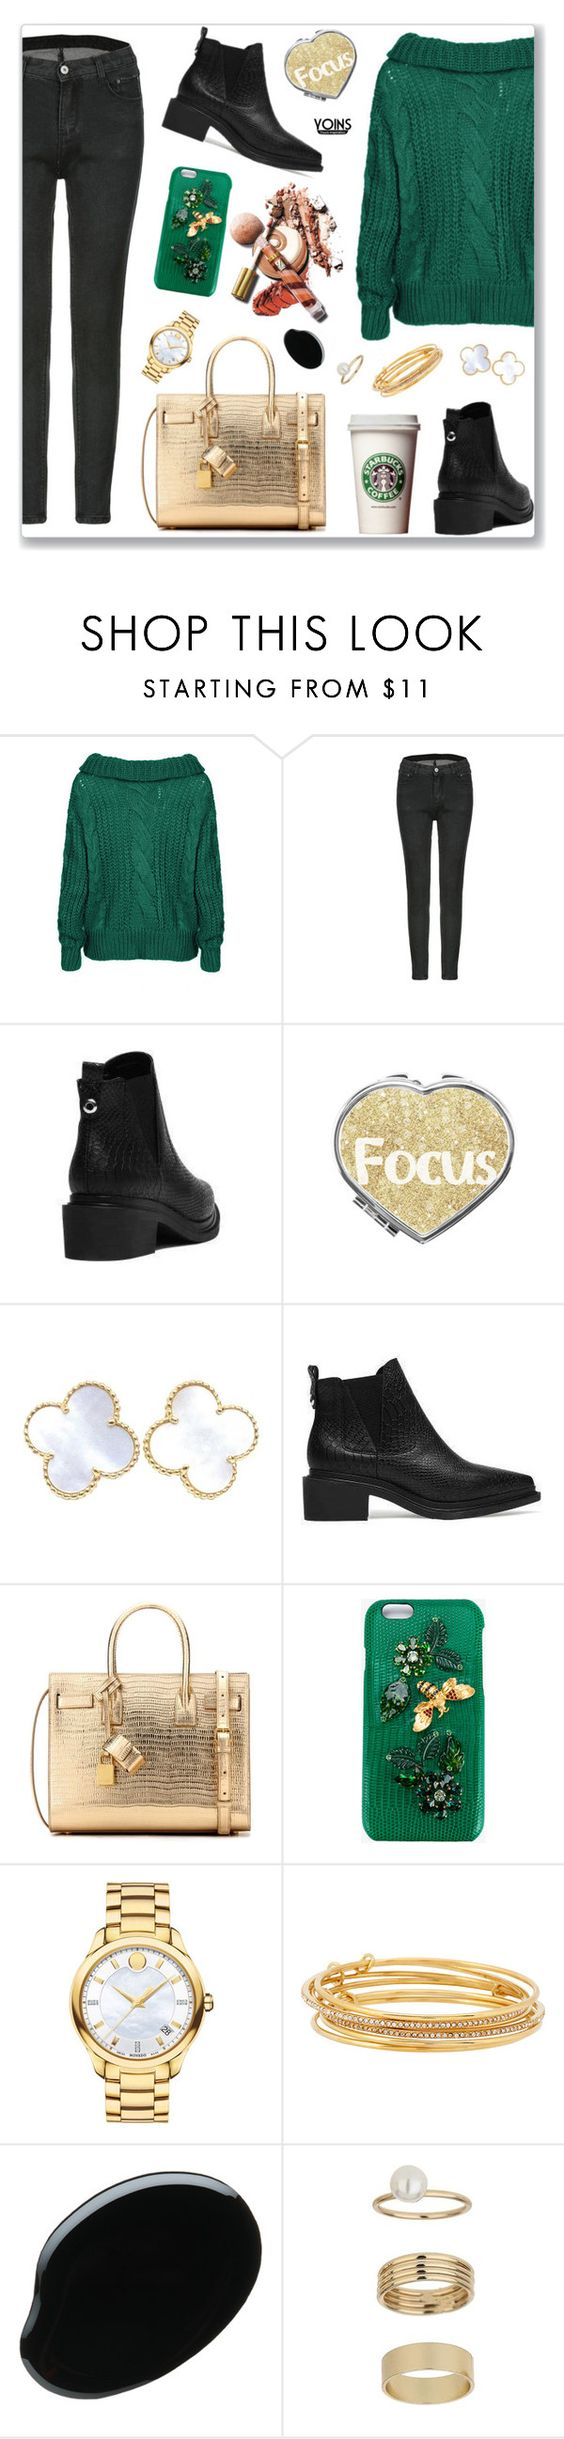 """""""yoins134"""" by nastenkakot ❤ liked on Polyvore featuring Van Cleef & Arpels, Yves Saint Laurent, Dolce&Gabbana, Movado, Kate Spade, Miss Selfridge, yoins, yoinscollection and loveyoins"""